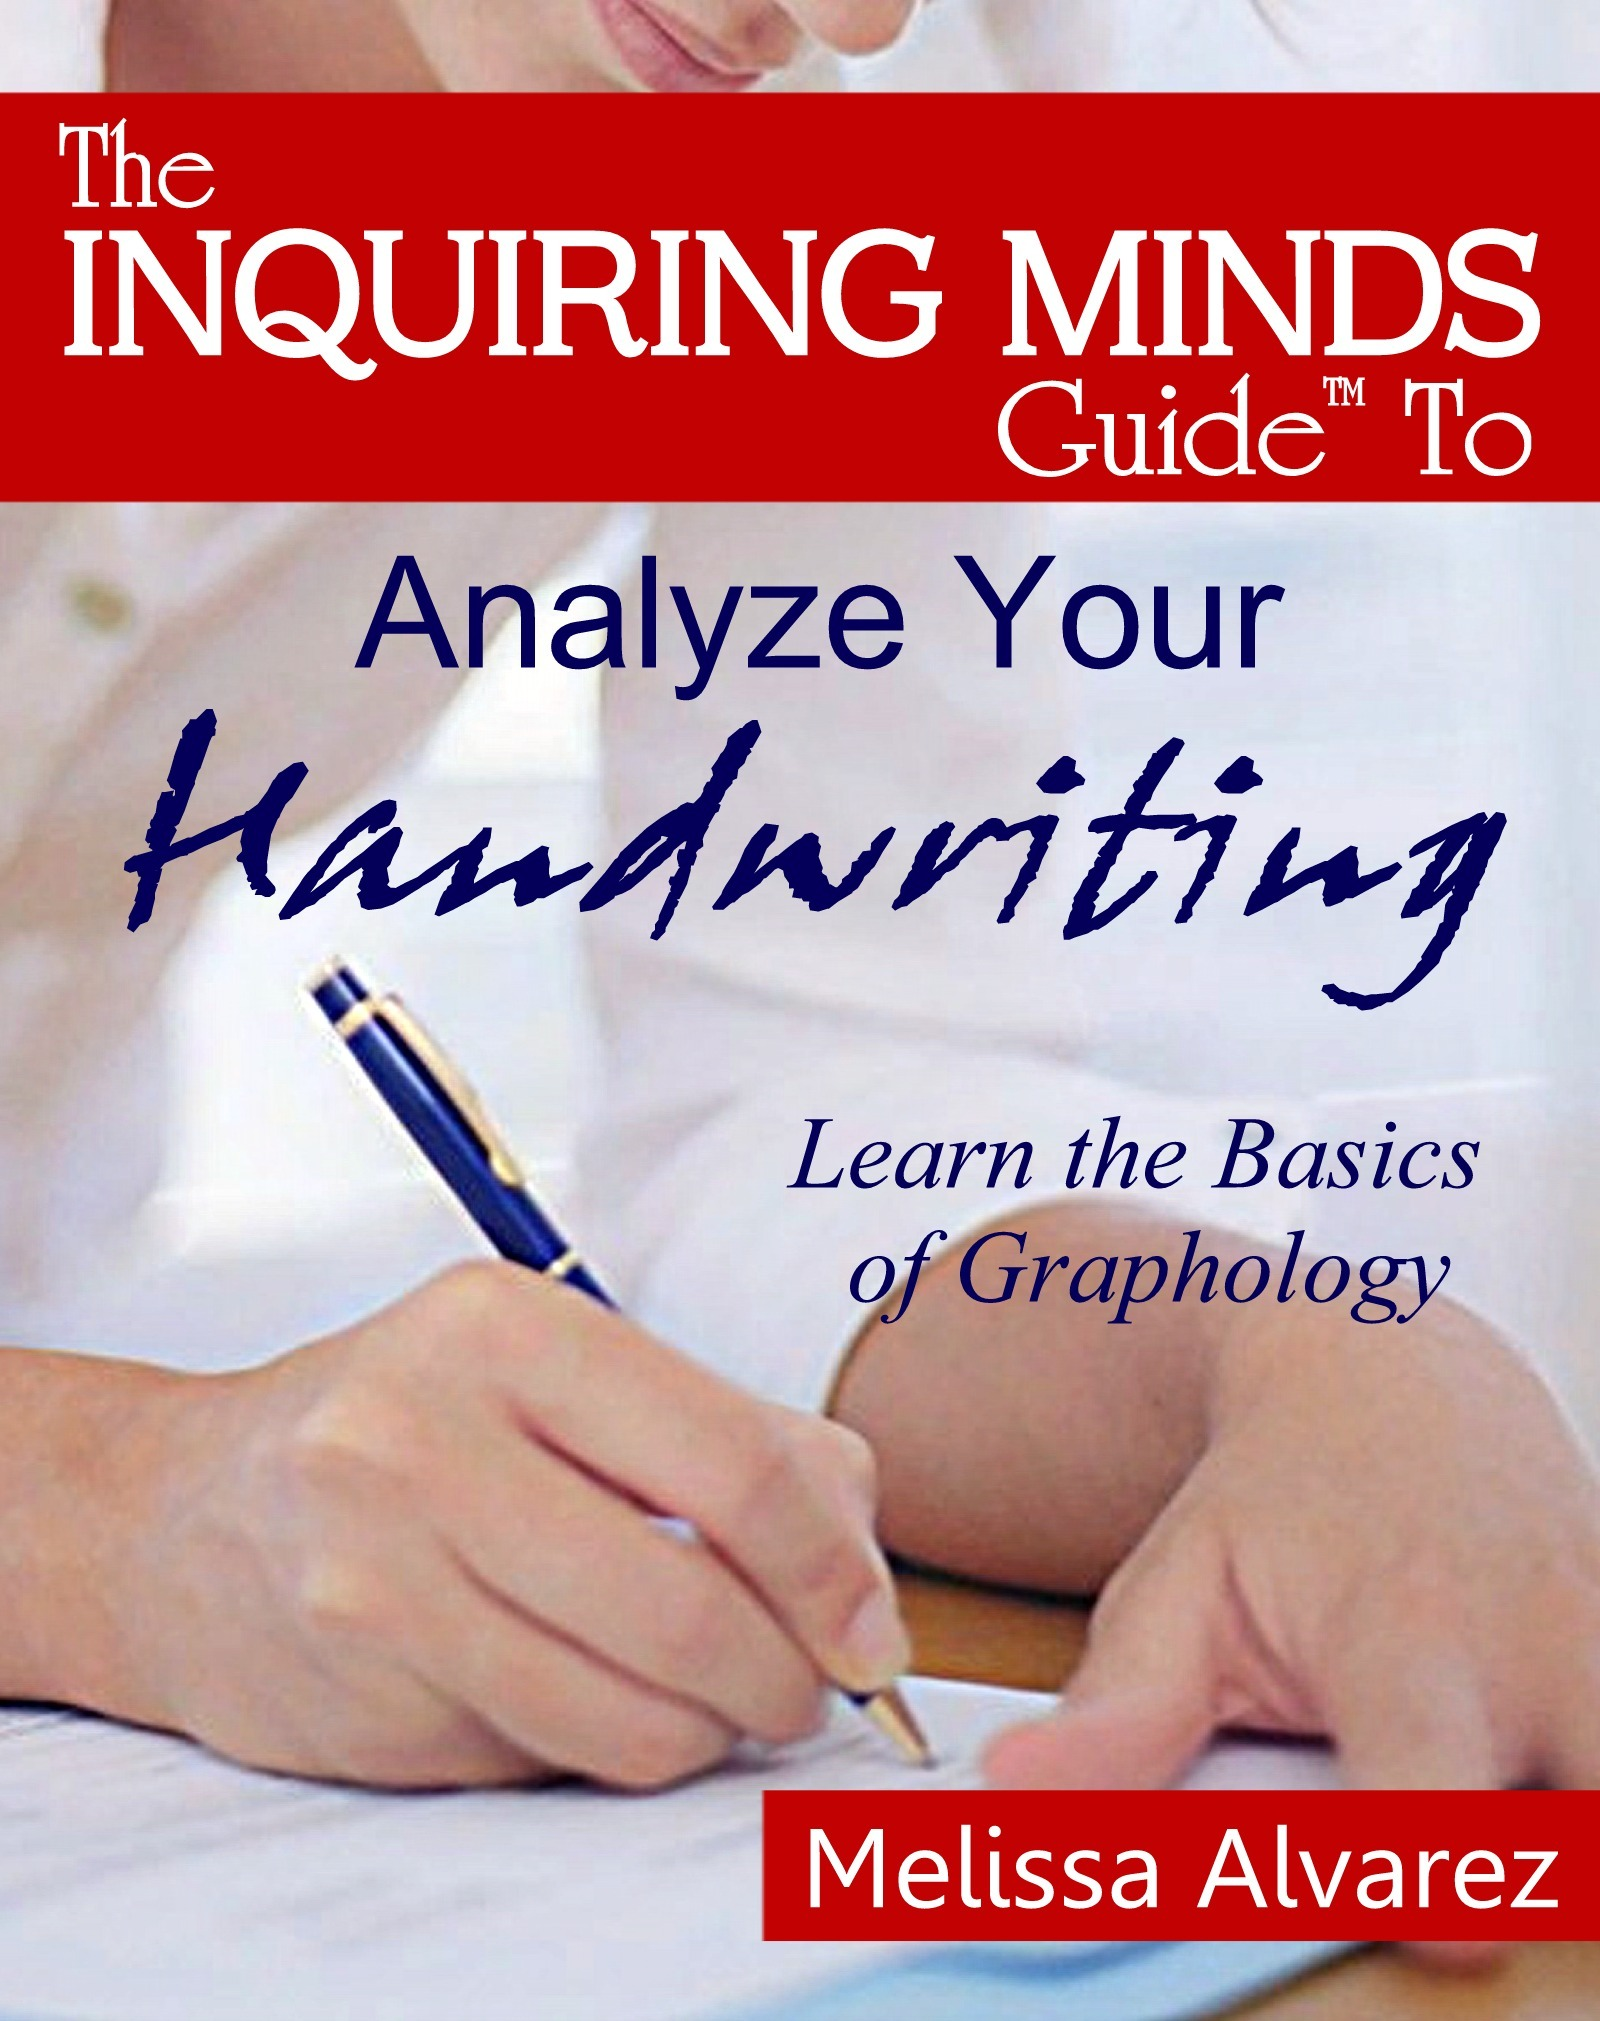 The Inquiring Minds Guide™ To Analyze Your Handwriting: Learn the Basics of Graphology